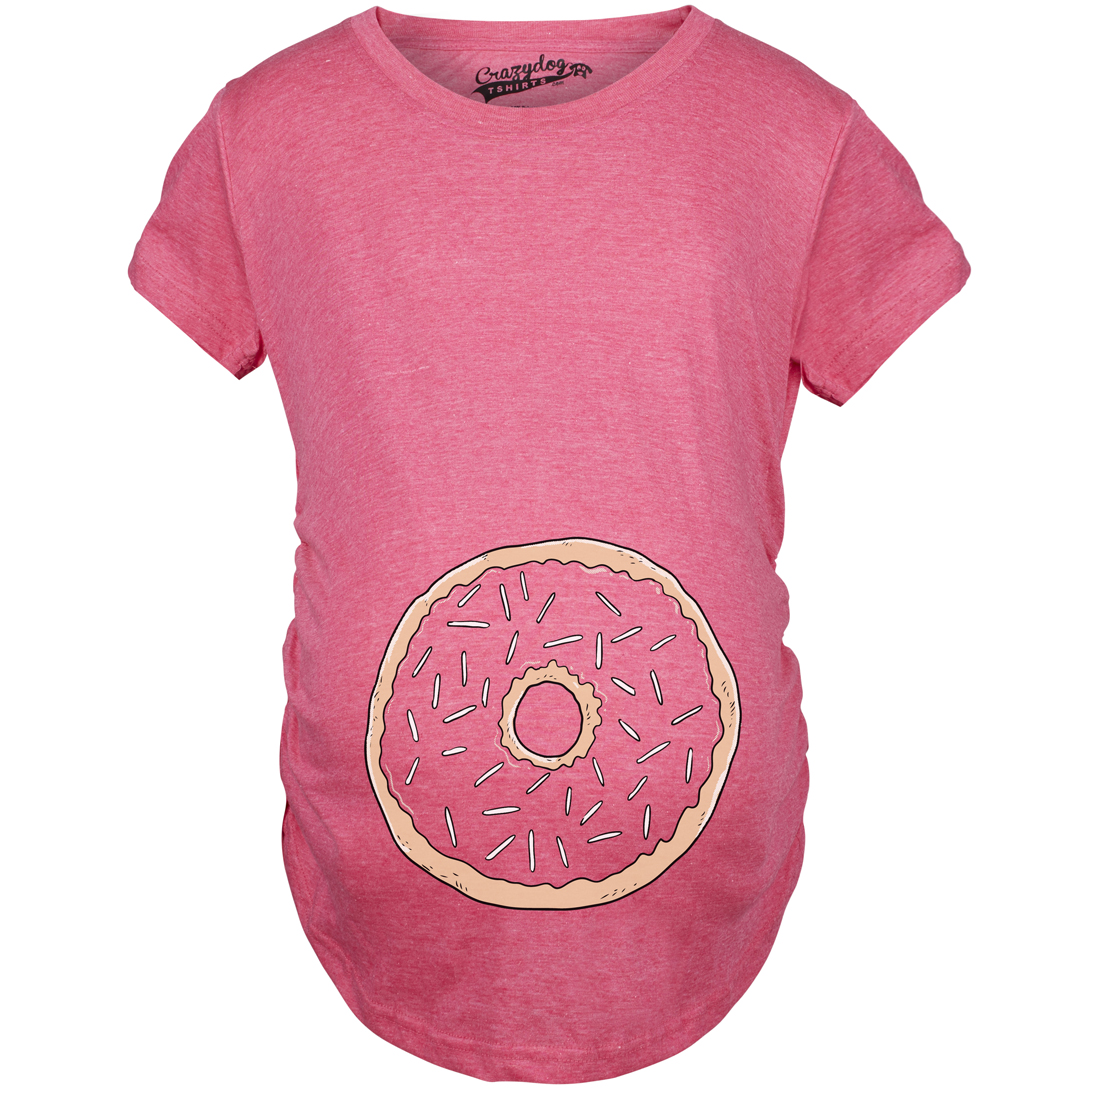 womens pregnancy donut baby bump cute maternity